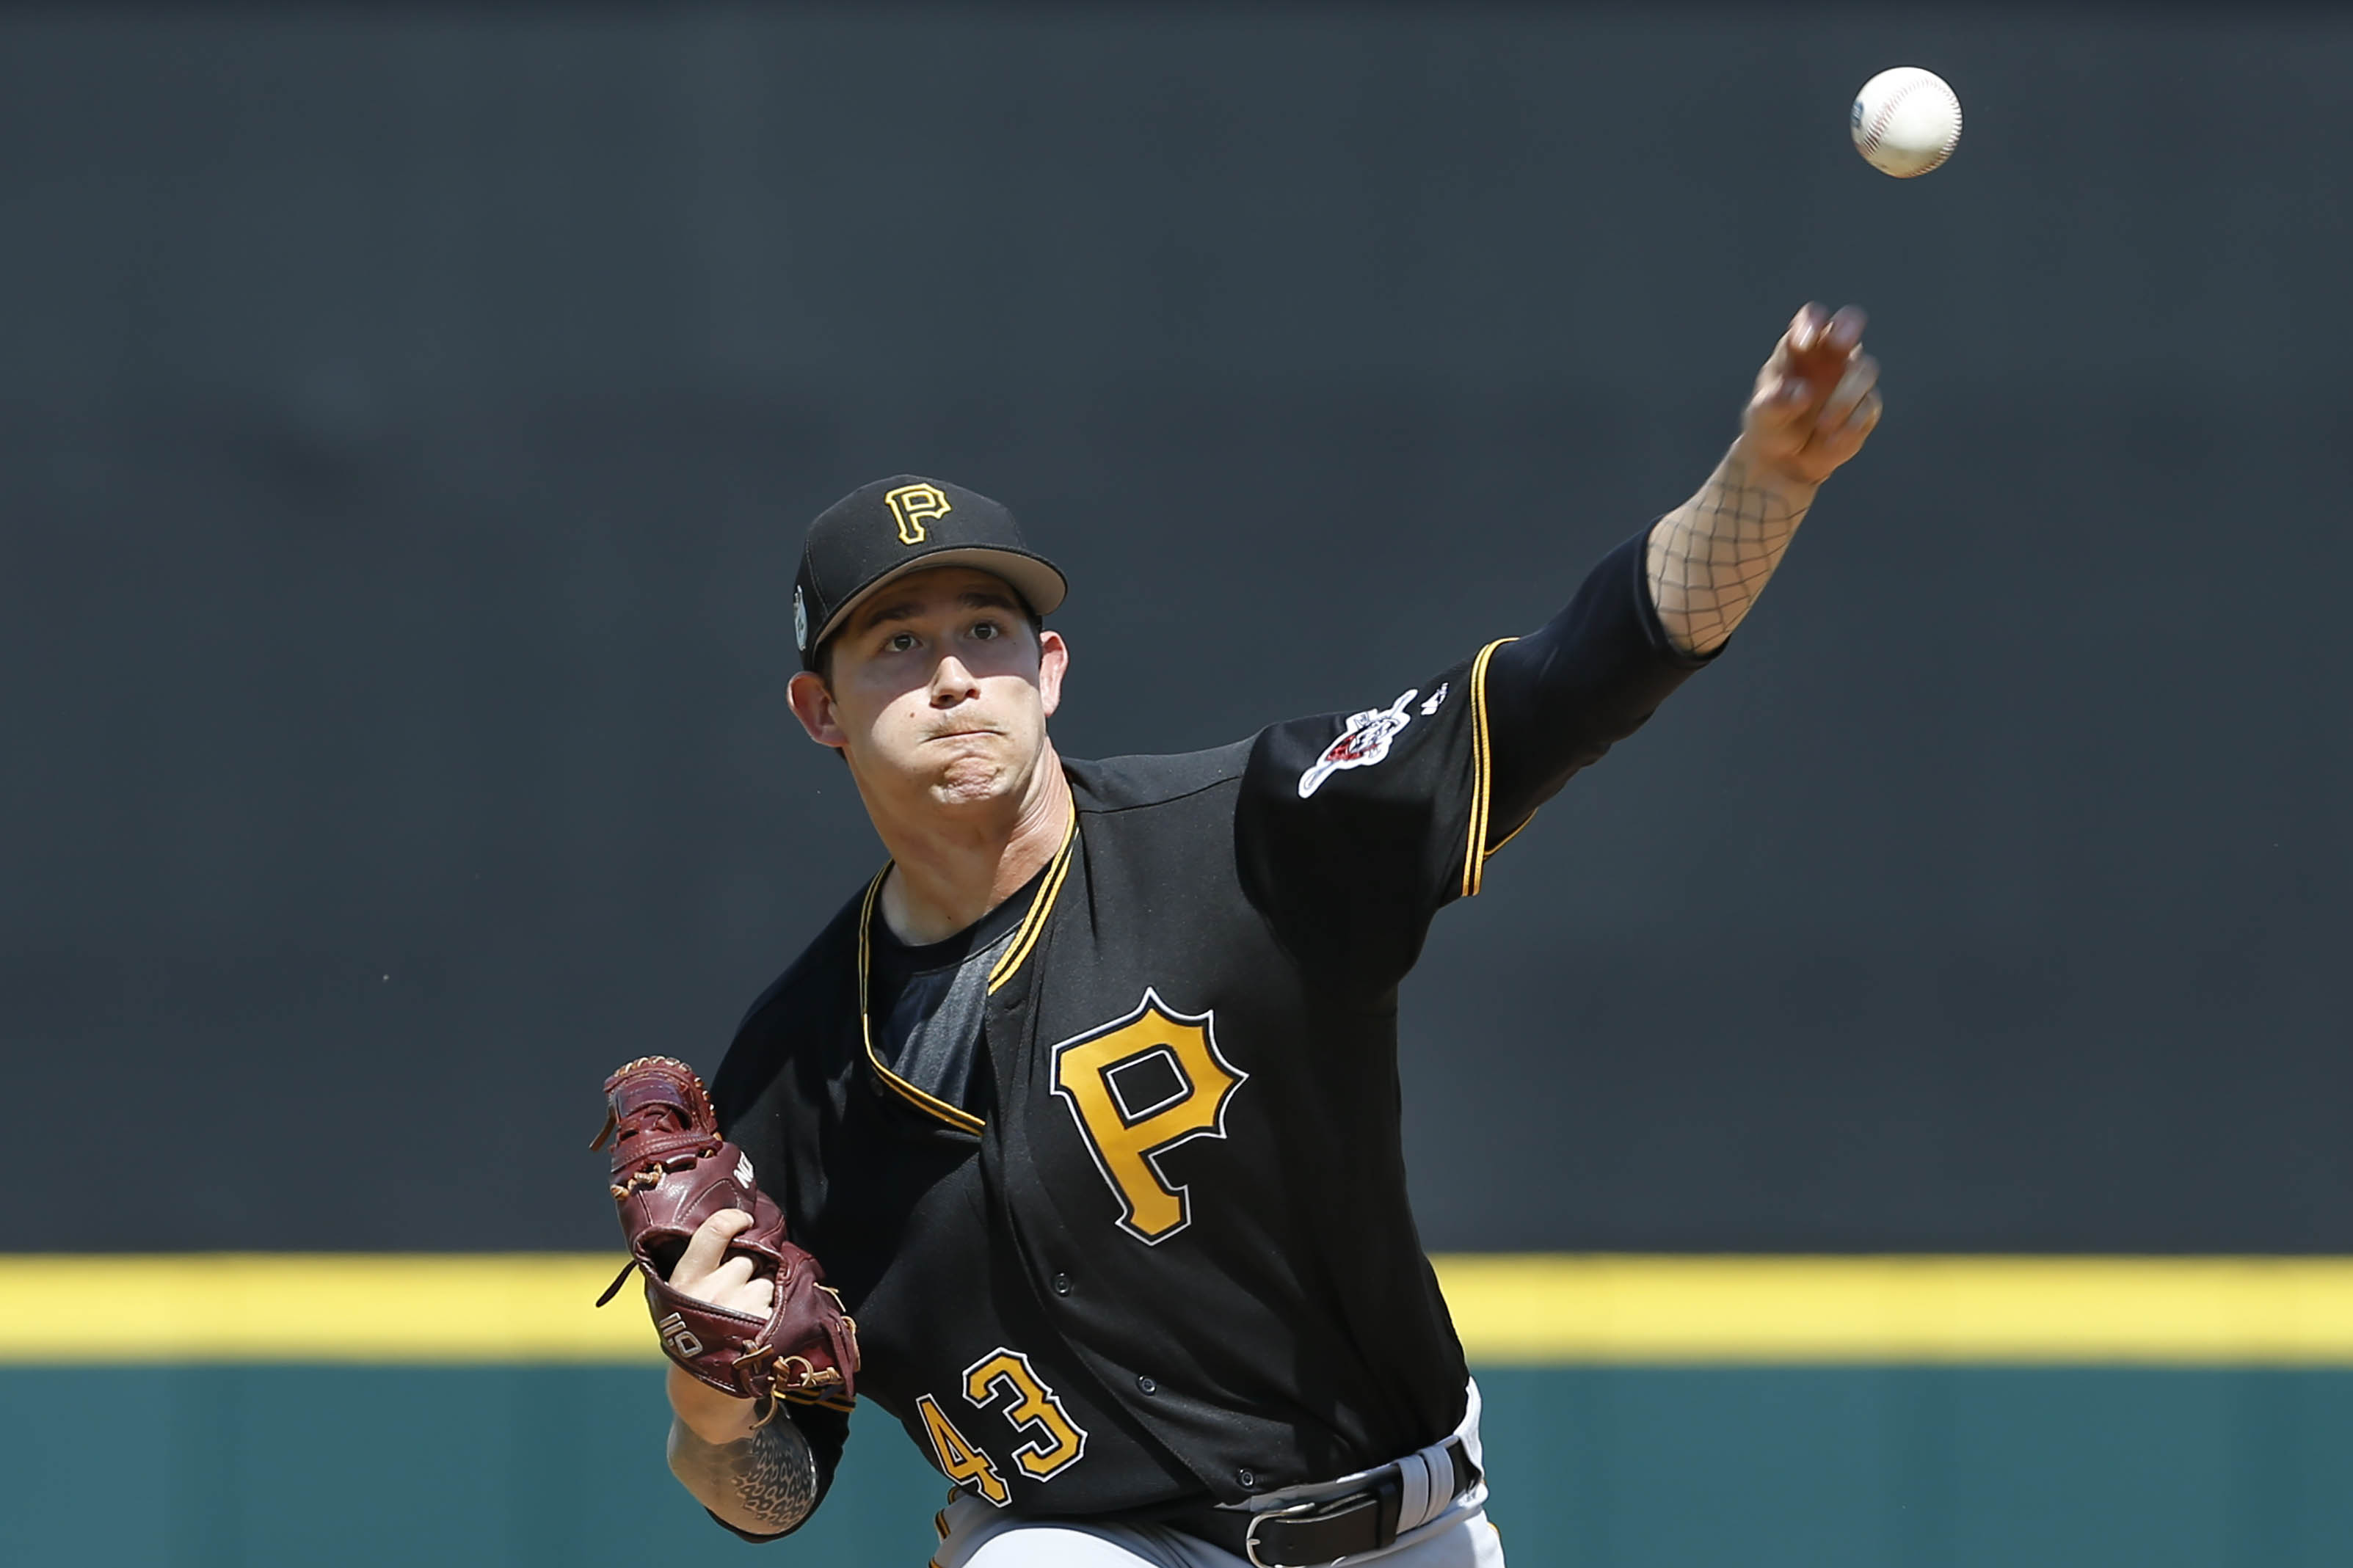 Pittsburgh Pirates 4, Minnesota Twins 3